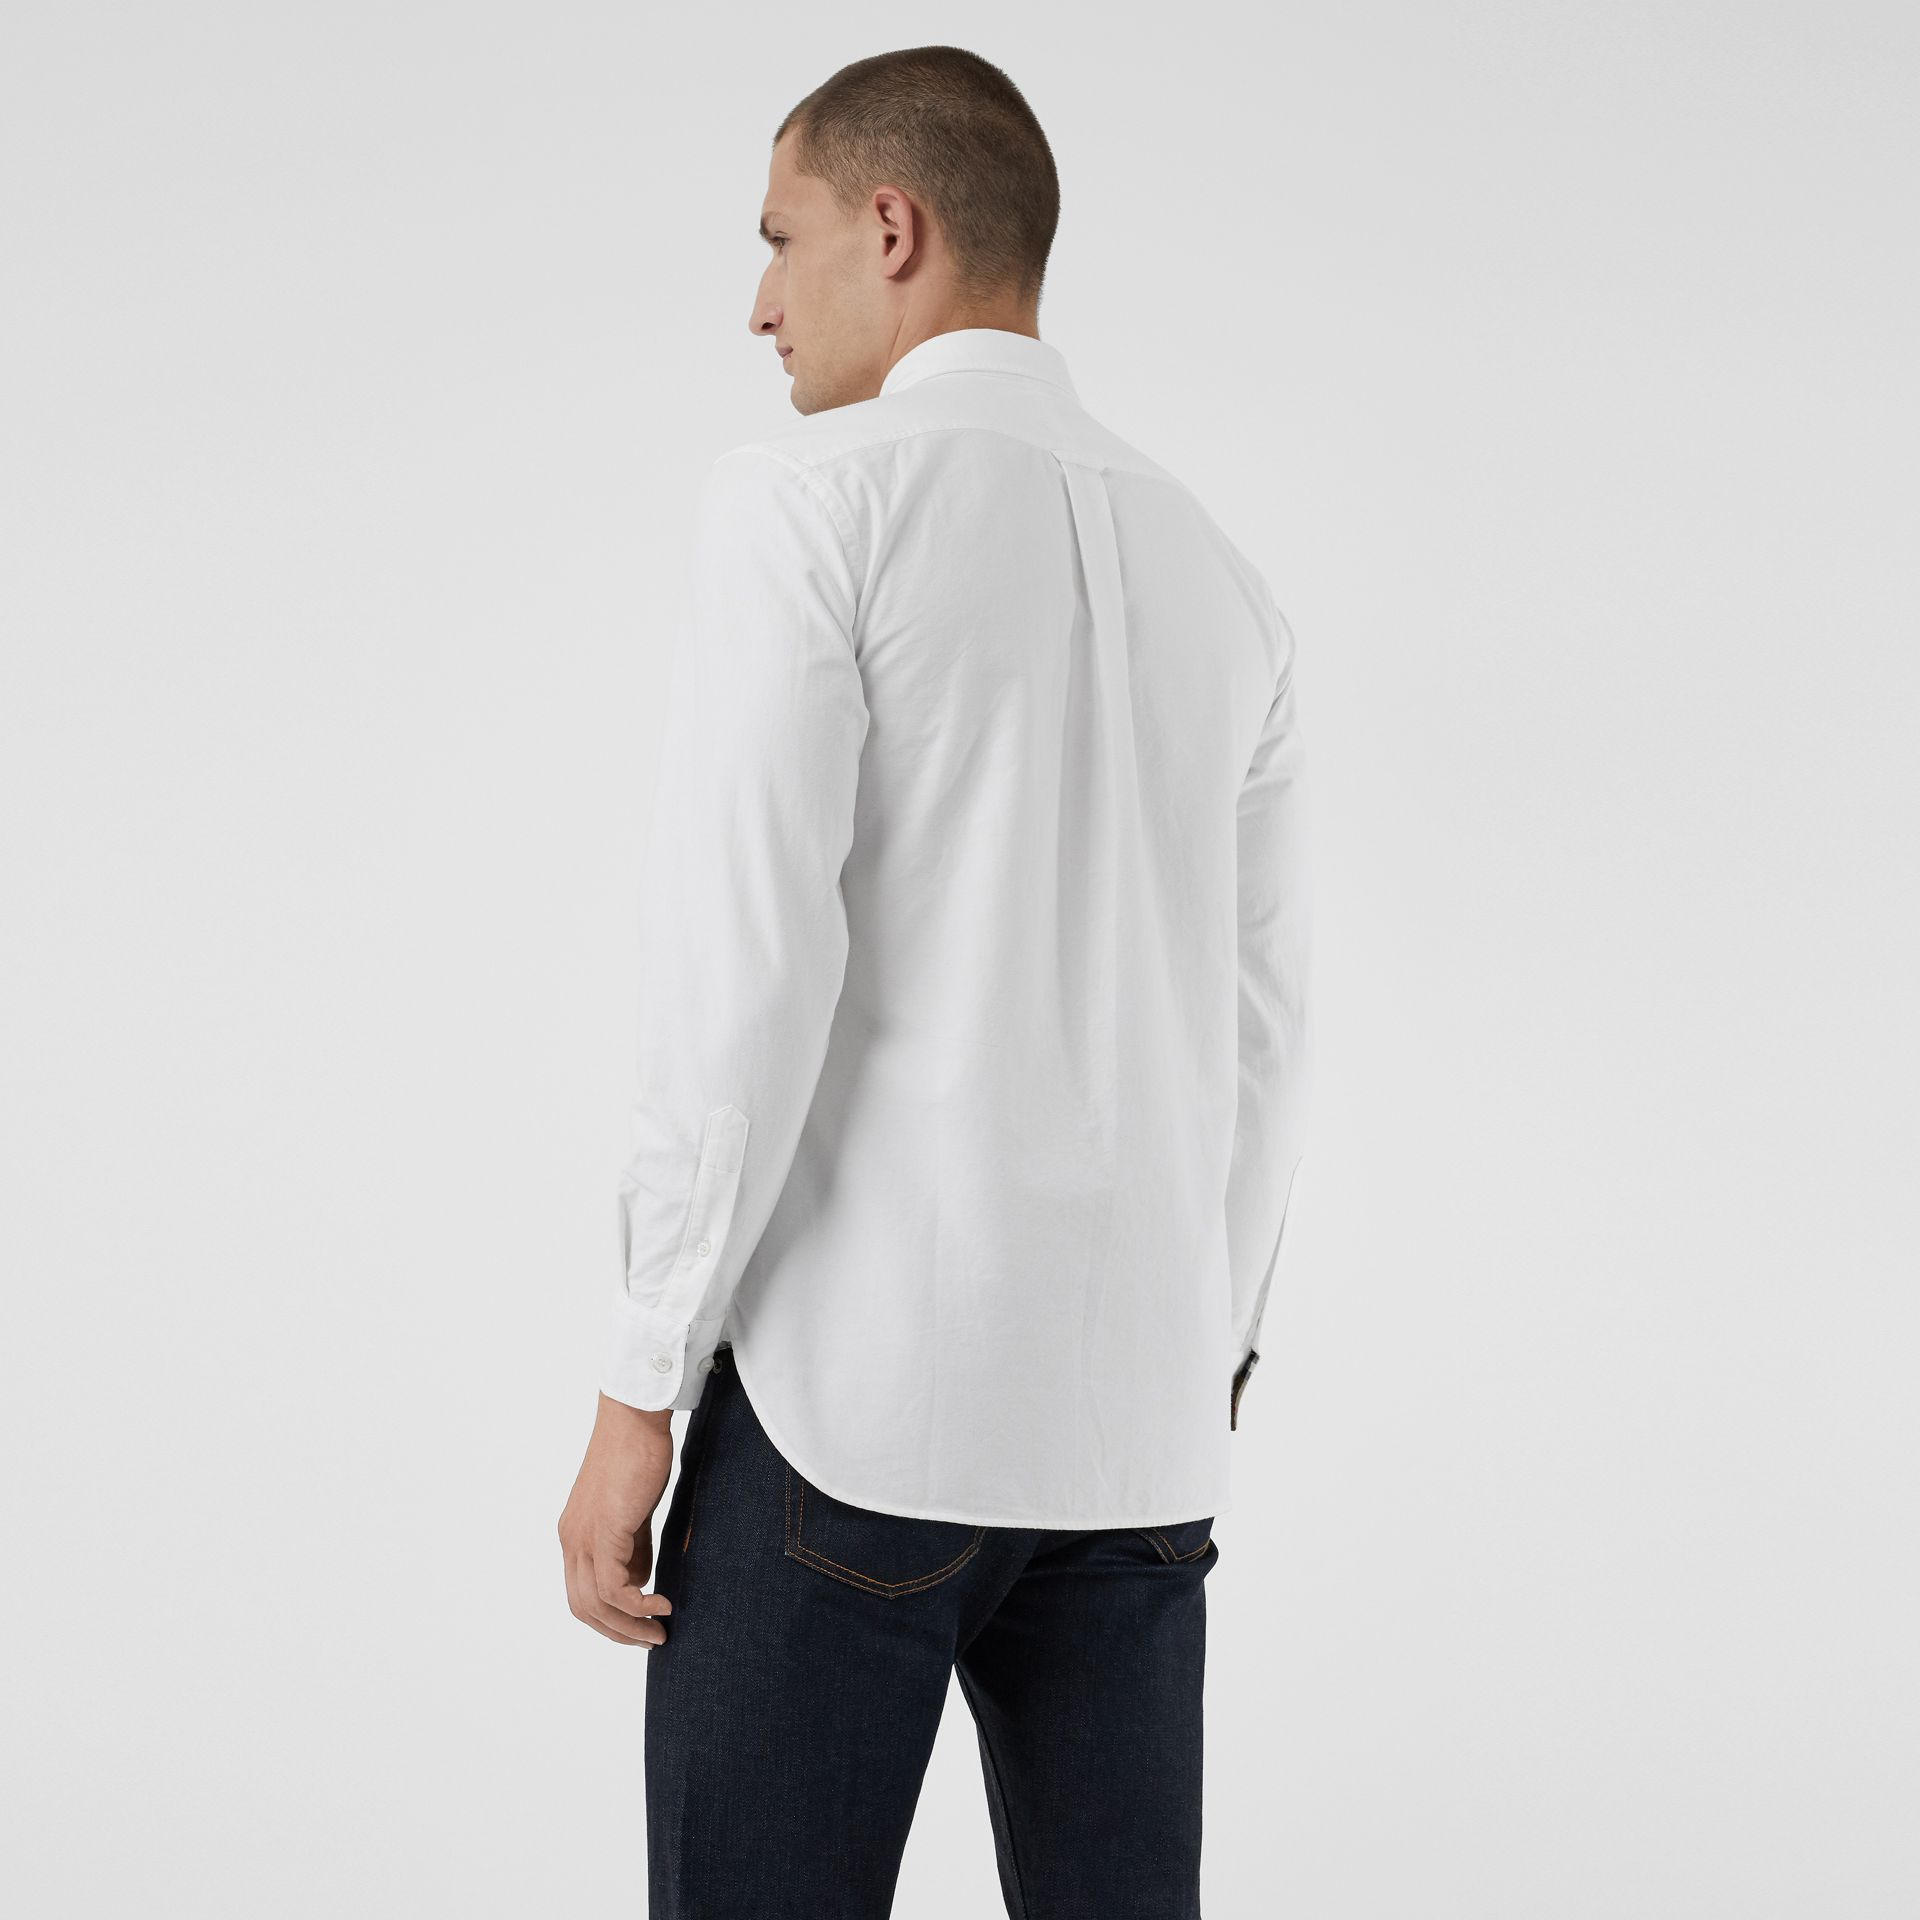 Embroidered Archive Logo Cotton Oxford Shirt in White - Men | Burberry Canada - gallery image 2